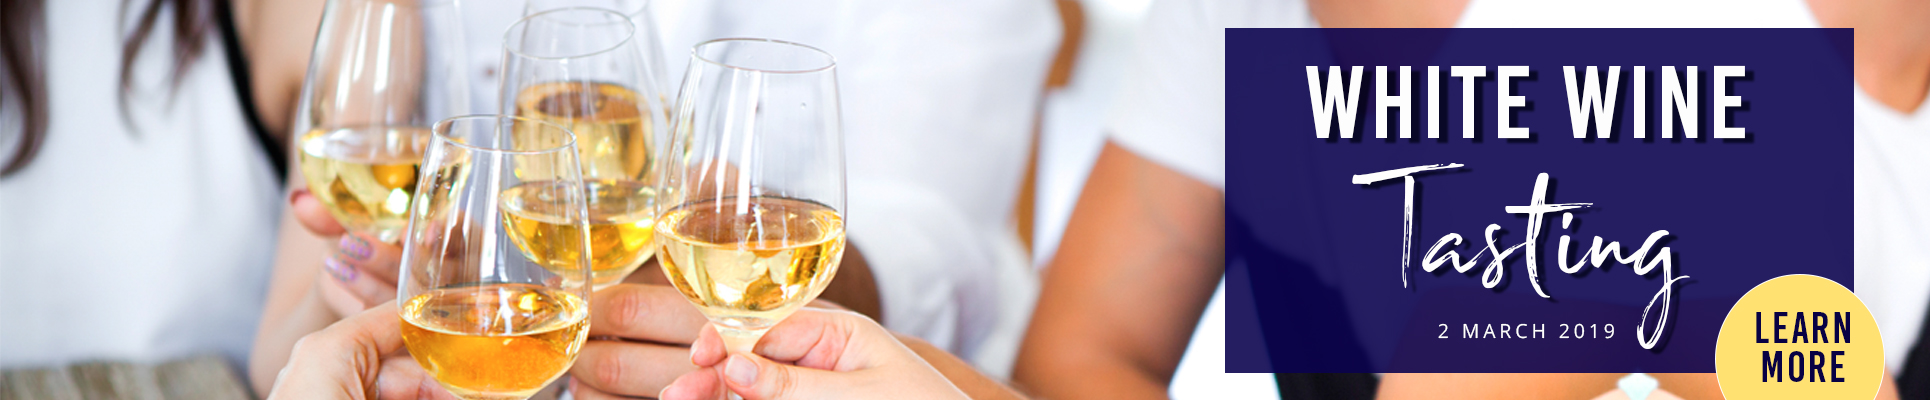 WHITE WINES PAIRED WITH A 5 COURSE MENU AT MISTY HILLS COUNTRY HOTEL MULDERSDRIFT, GAUTENG EVENTS